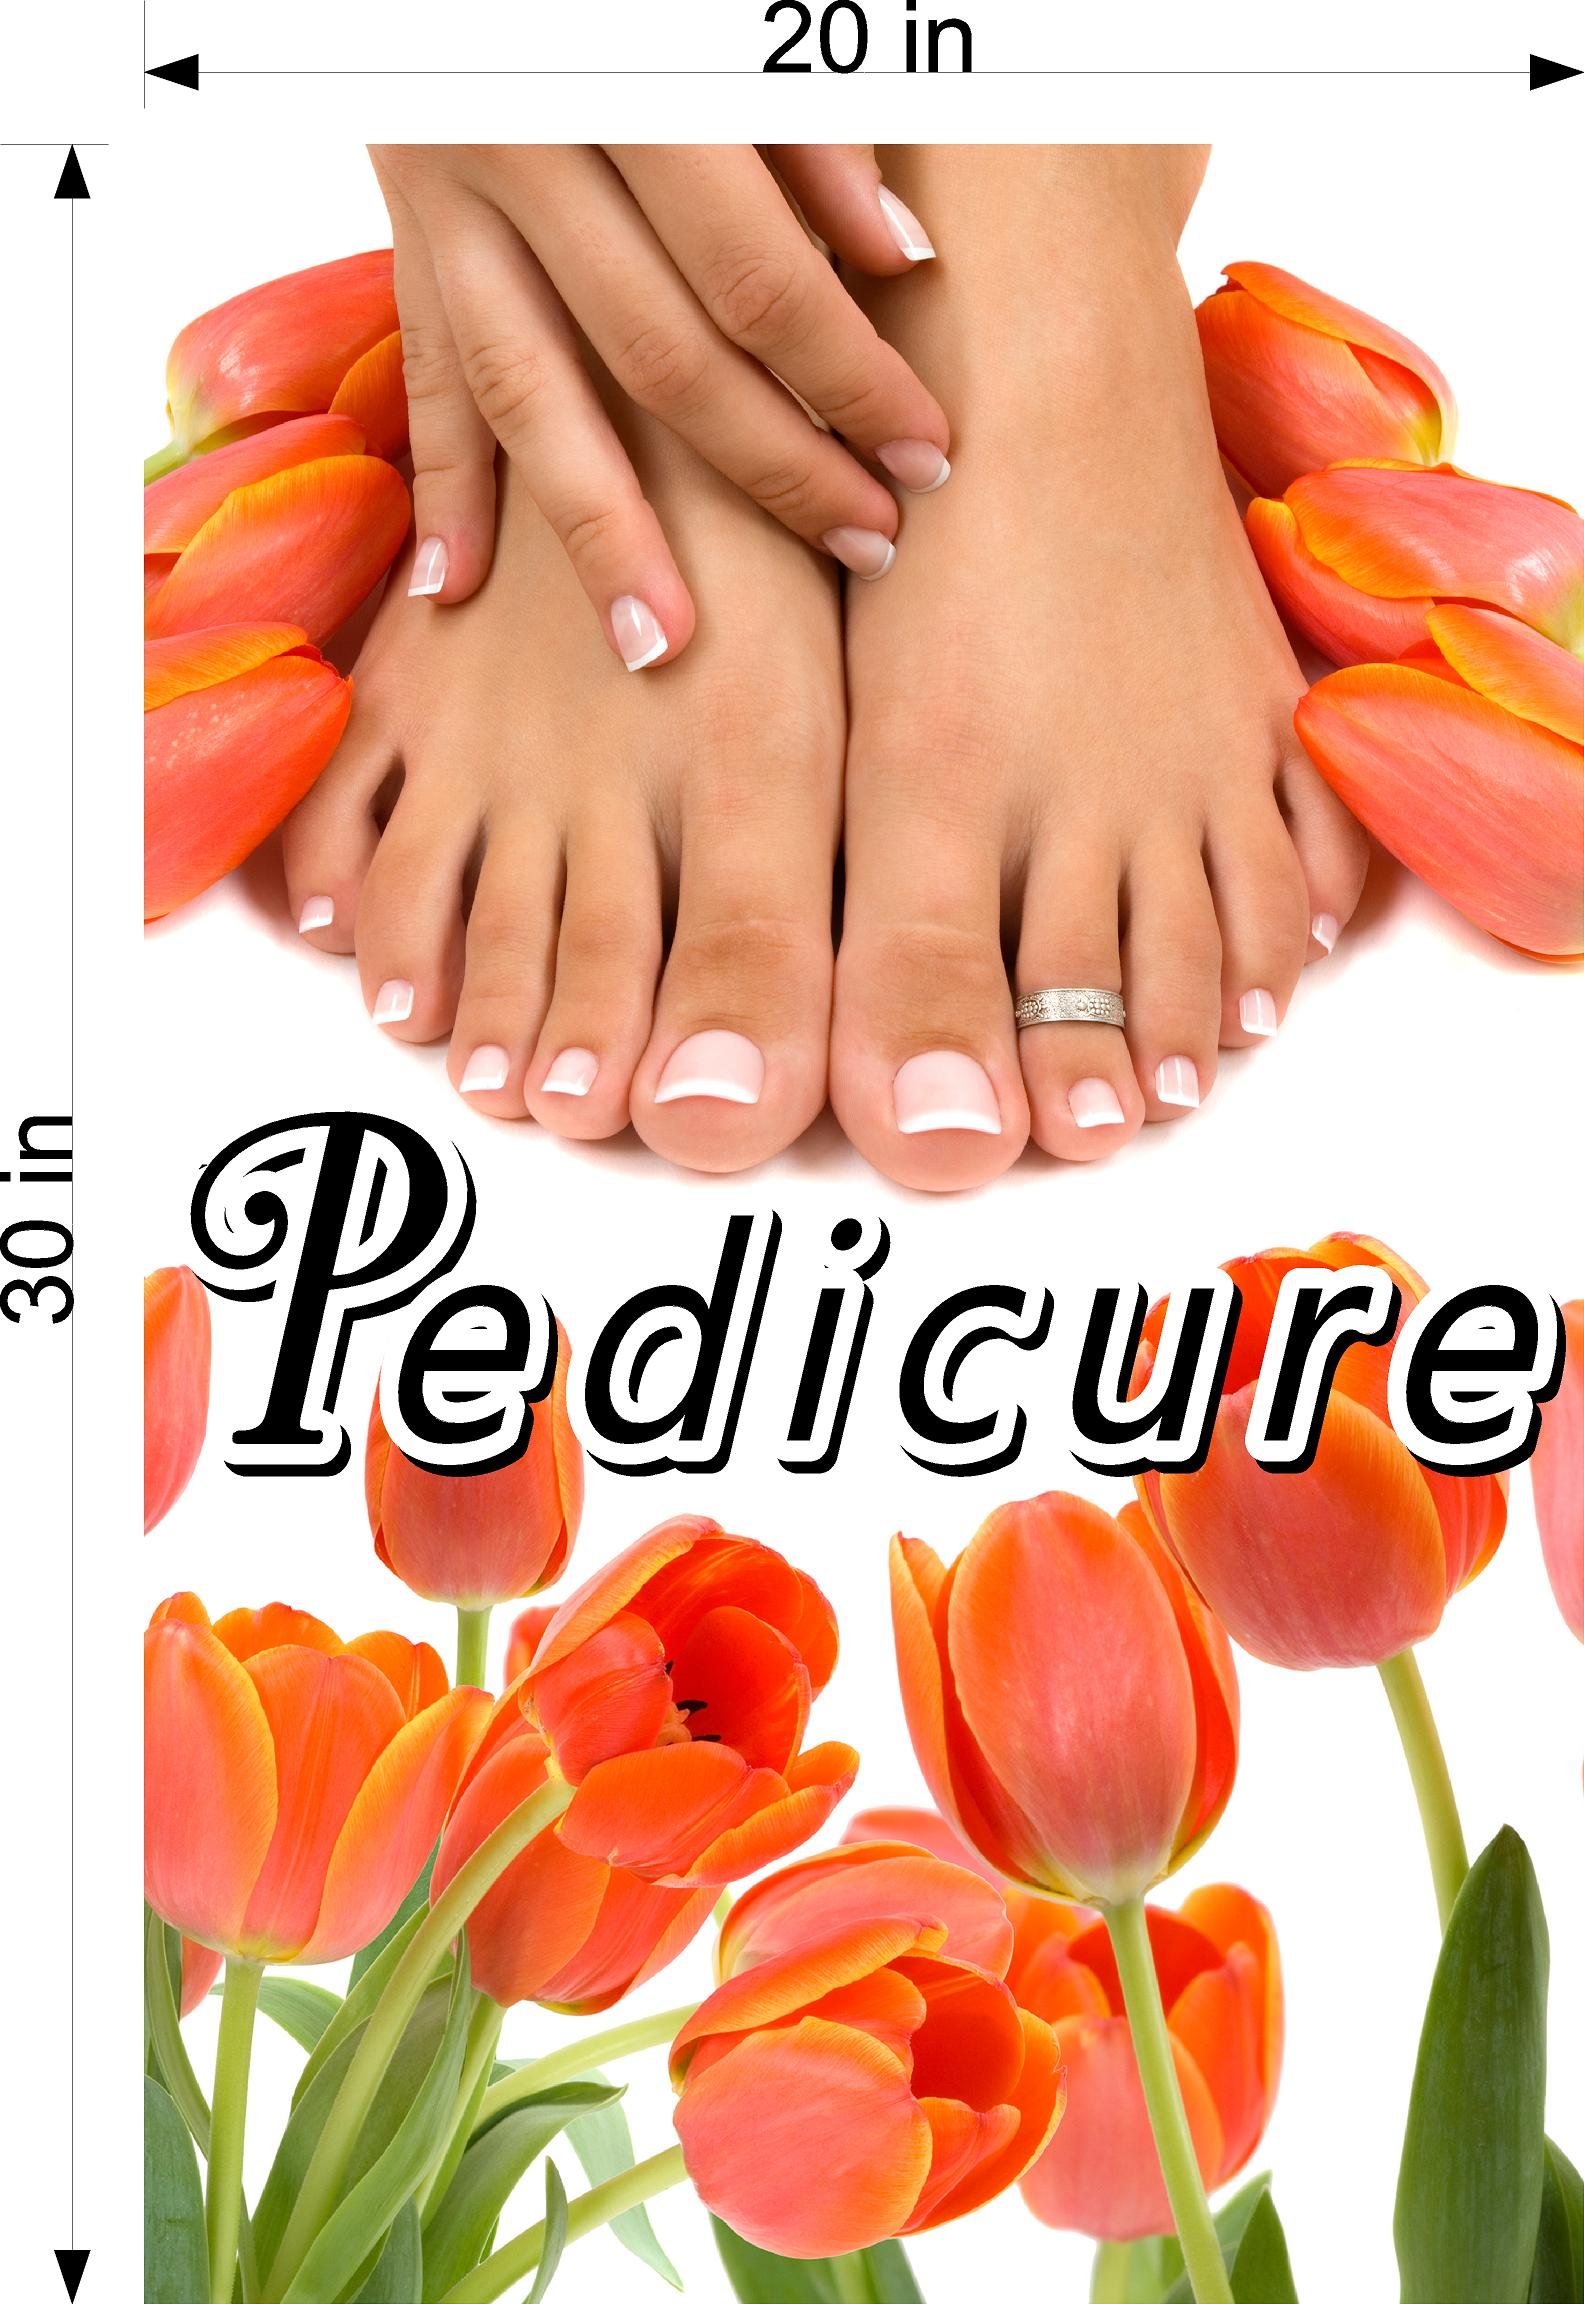 Pedicure 23 Photo-Realistic Paper Poster Premium Matte Interior Inside Sign Advertising Marketing Wall Window Non-Laminated Vertical